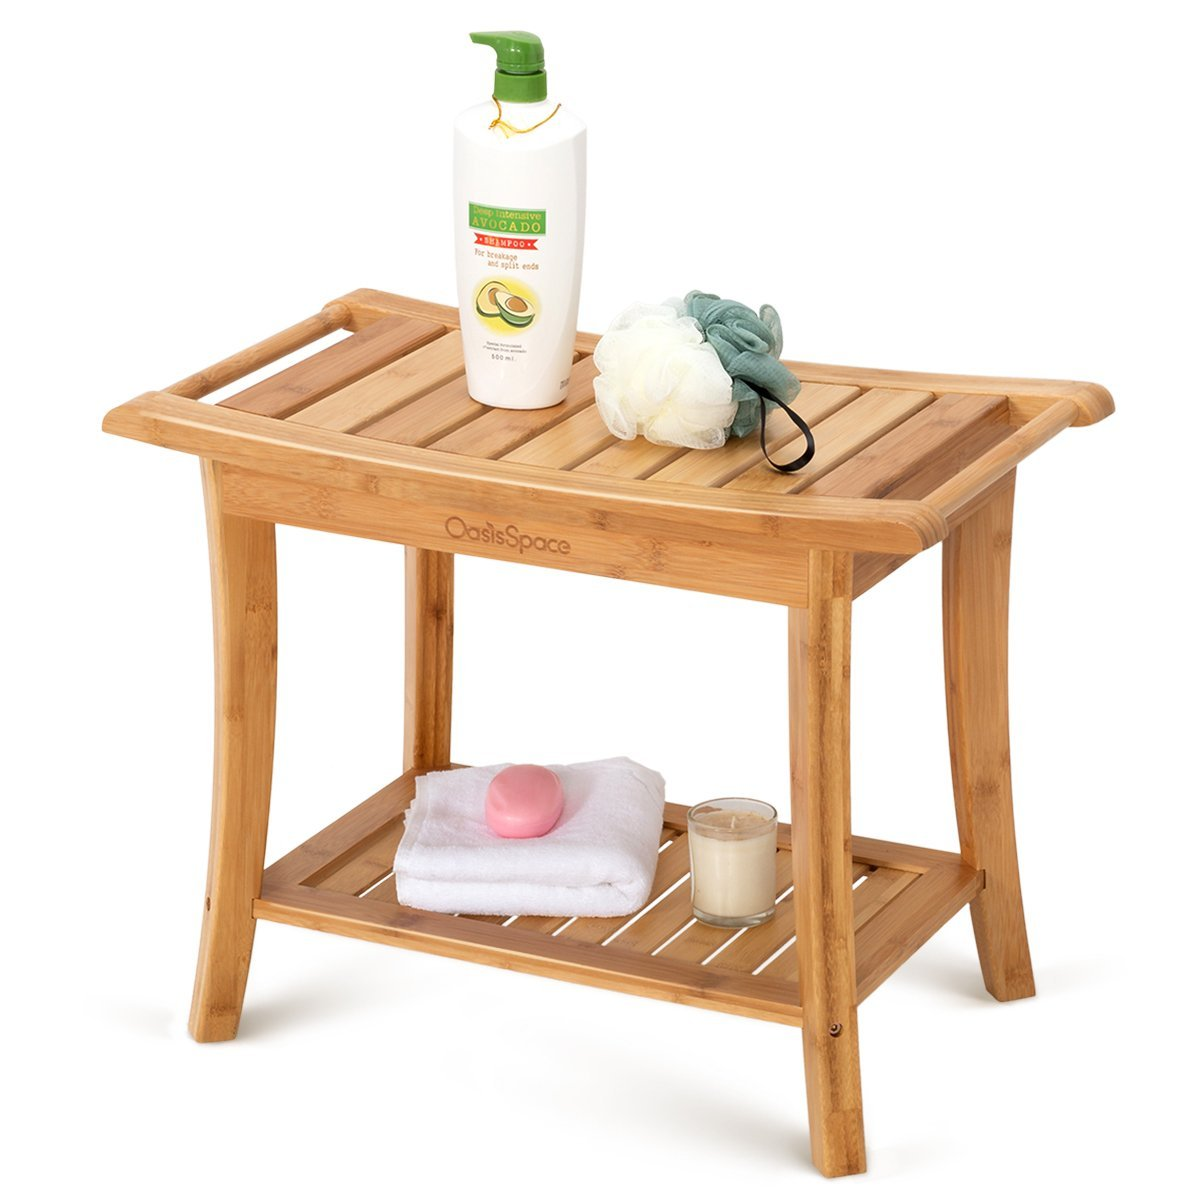 OasisSpace Bamboo Shower Bench, 24' Waterproof Shower Chair with Storage Shelf, Wood Spa Bath Organizer Seat Stool, Perfect for Indoor or Outdoor 24 Waterproof Shower Chair with Storage Shelf